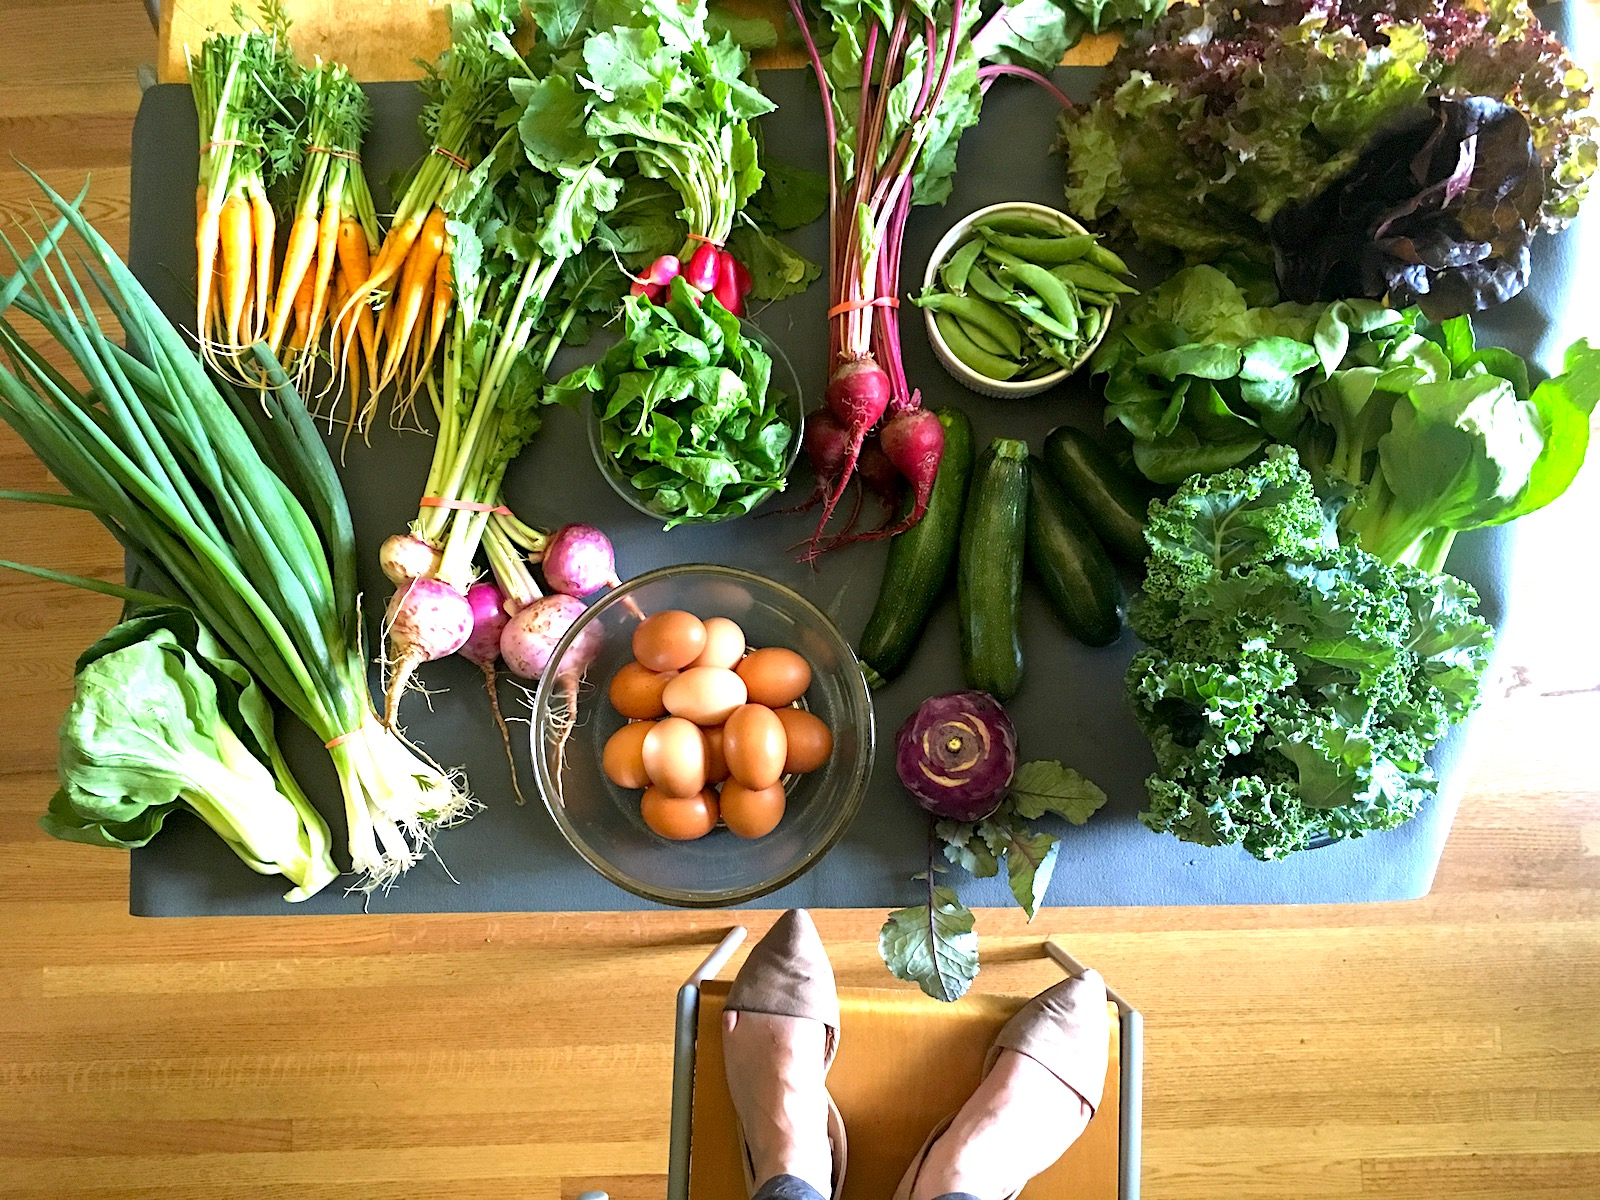 — A REAL CSA SHARE FROM RATHGEBERS' GARTEN —